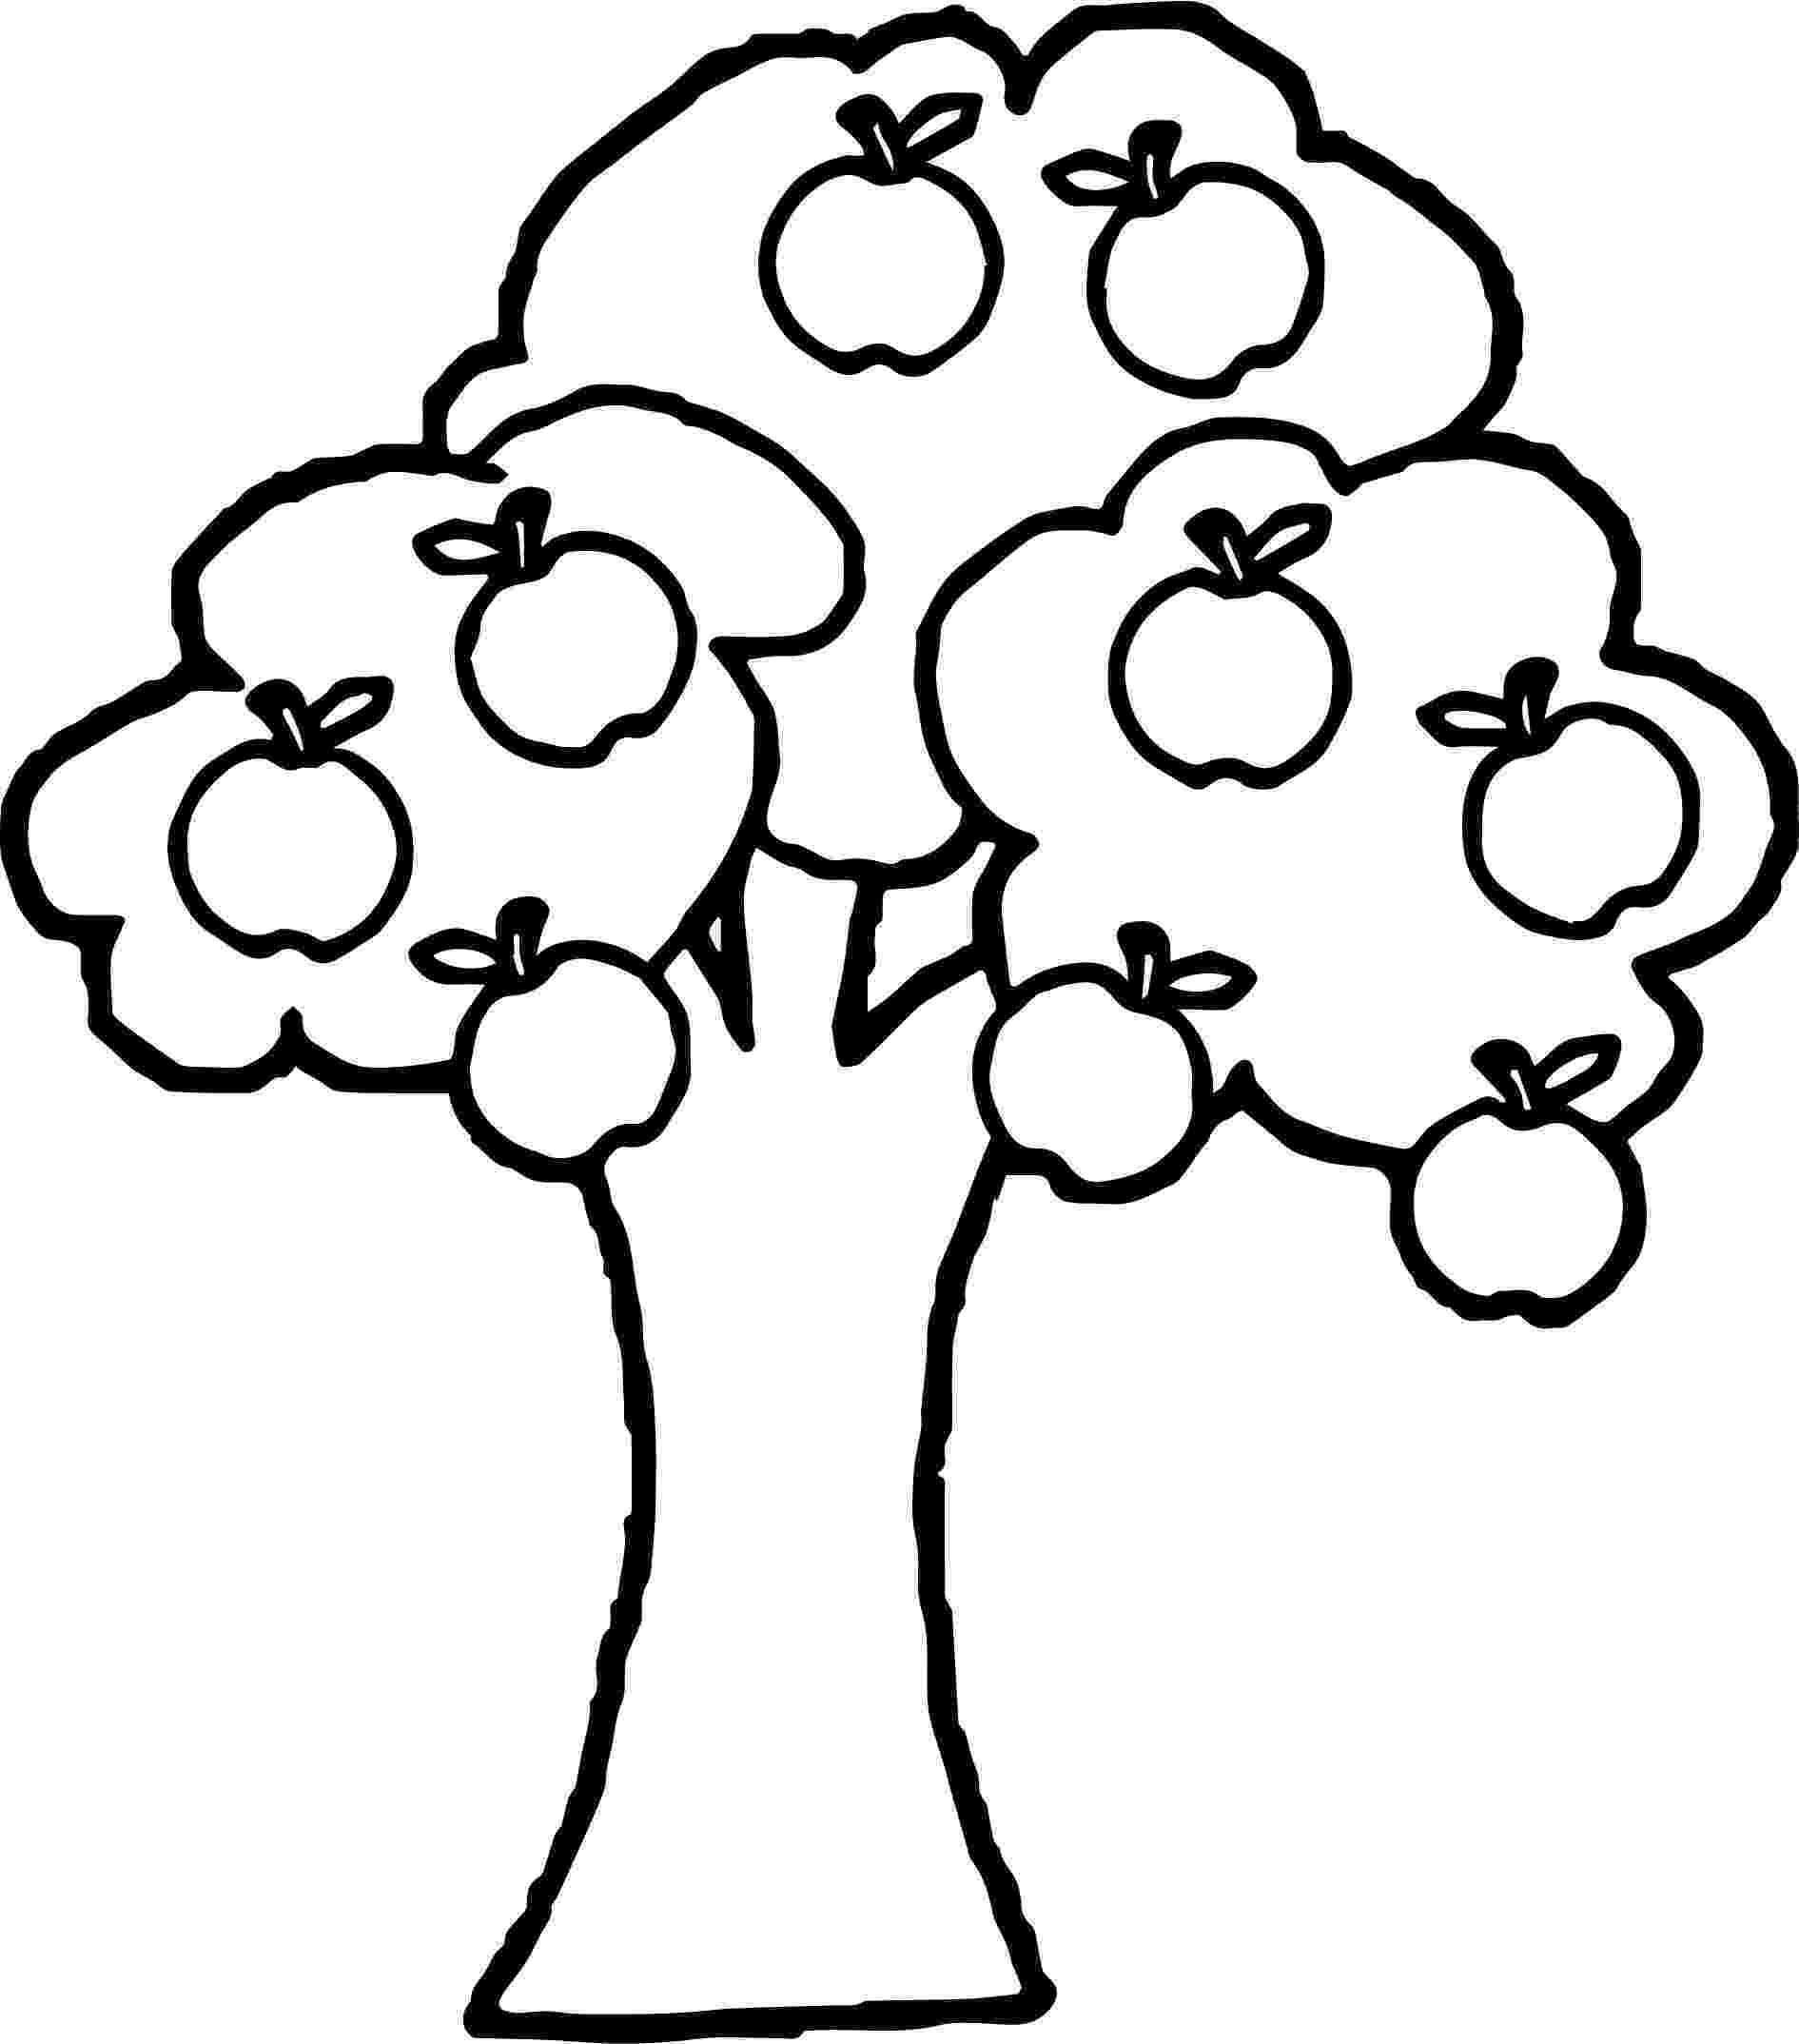 coloring pages of fruit trees fruit tree coloring page at getcoloringscom free fruit coloring of trees pages